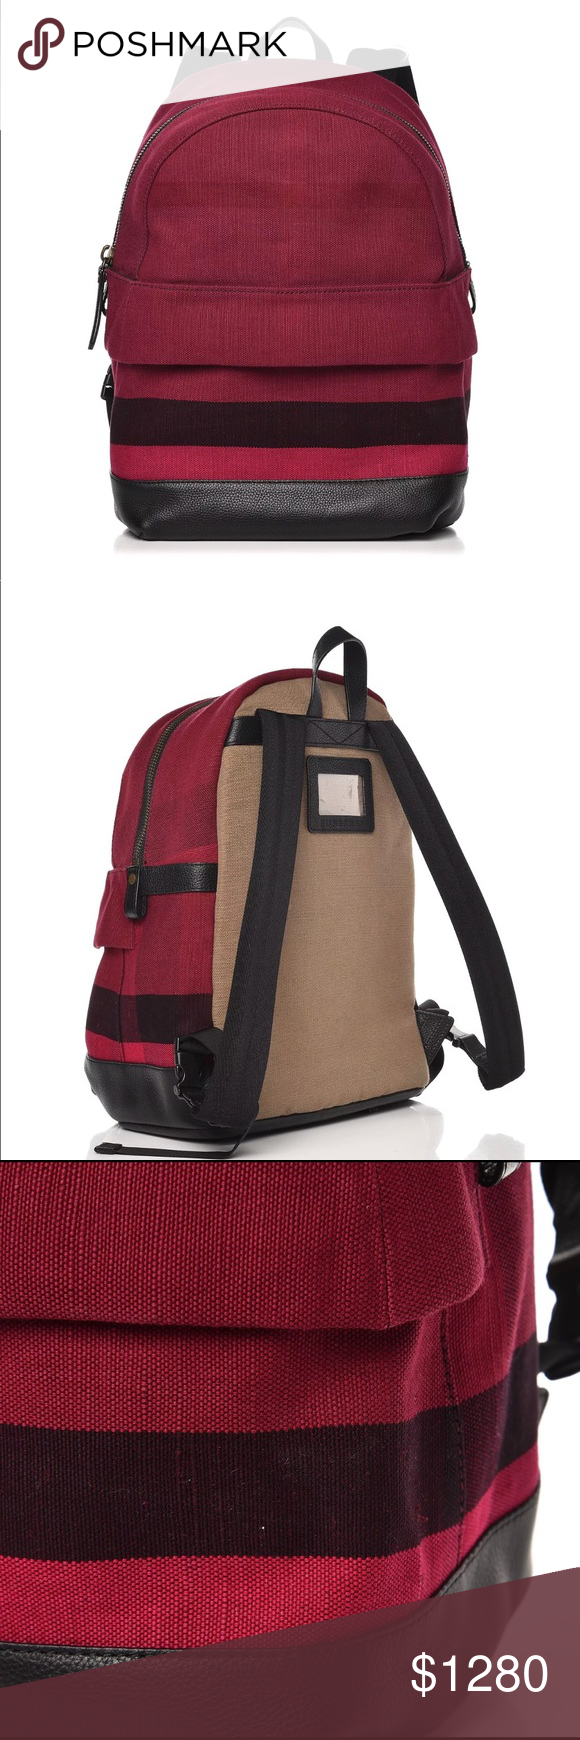 4005d0ce206c Authentic Burberry backpack This is an authentic BURBERRY Canvas Check  Leather Trim Backpack. This chic